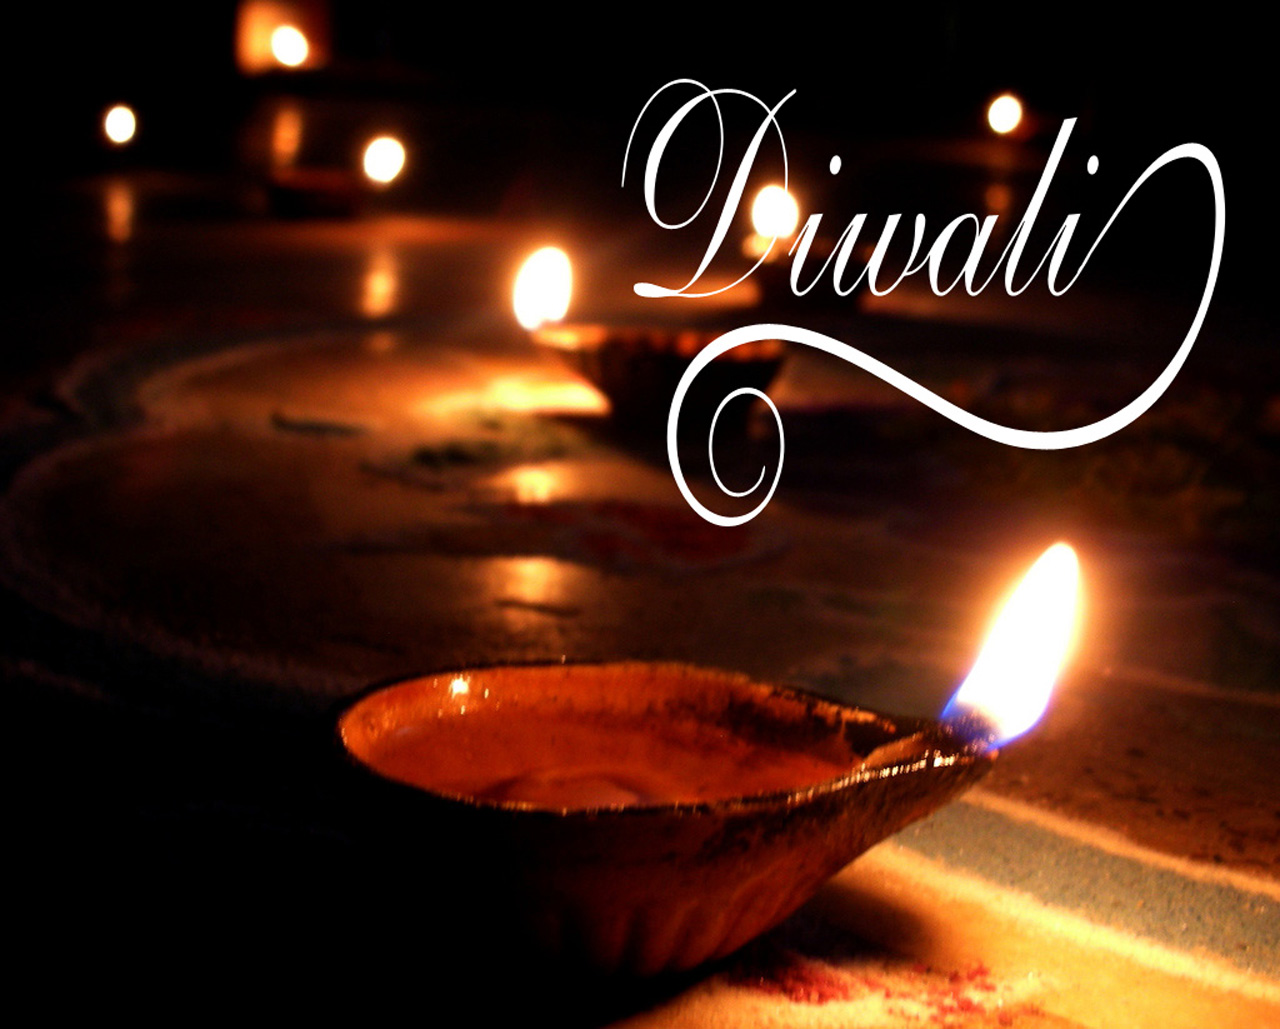 beautiful diwali wallpaper